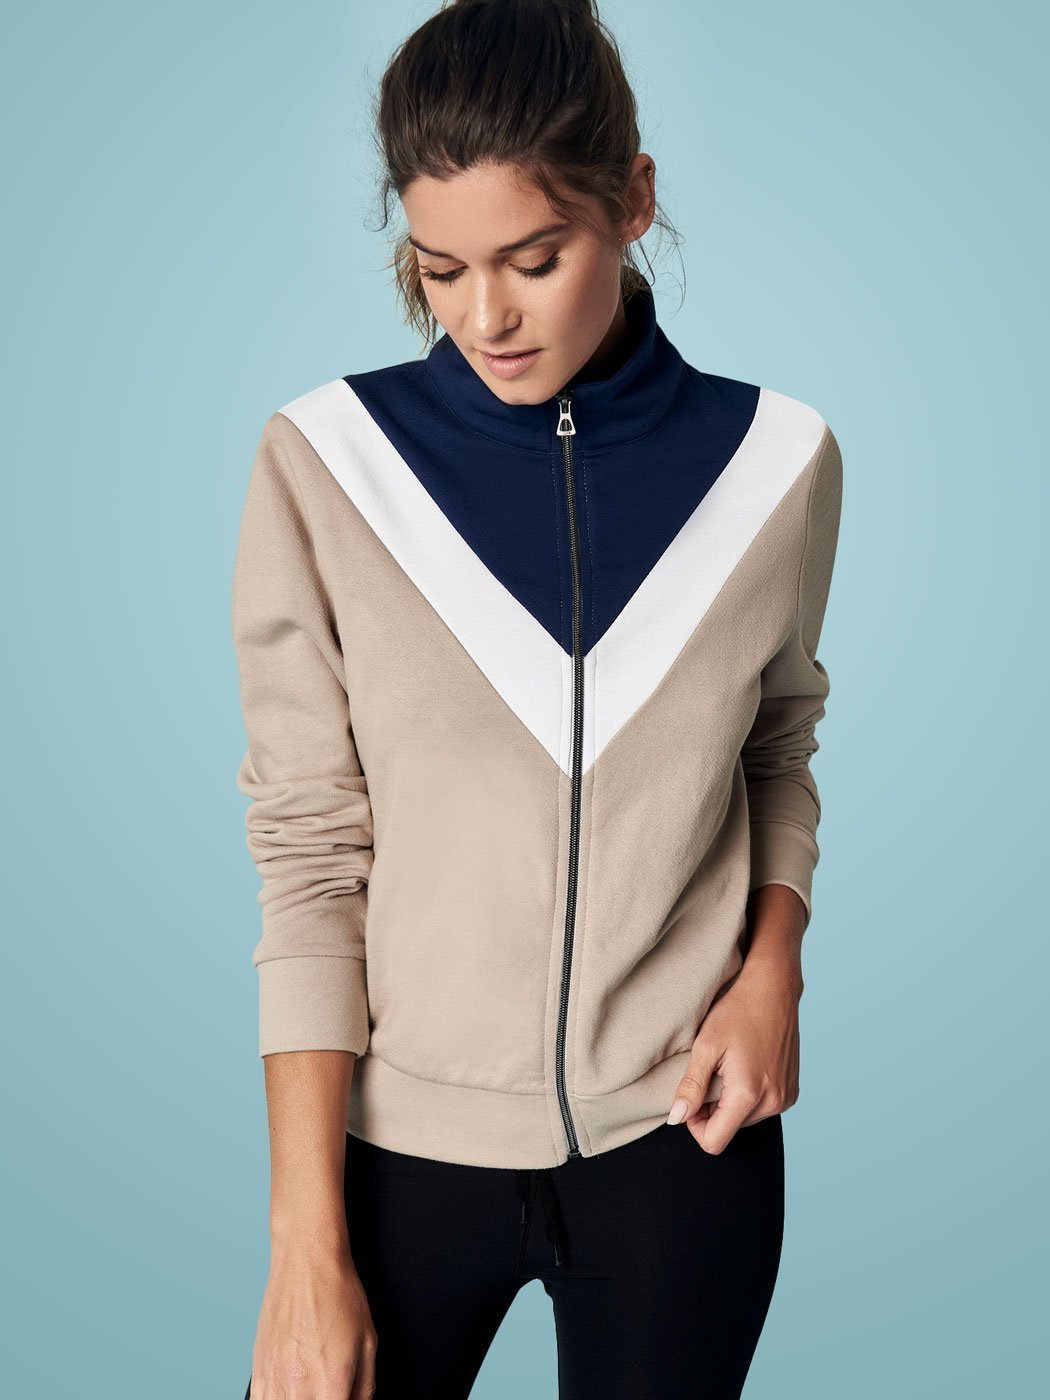 Off Duty Chevron Jacket, Final Sale